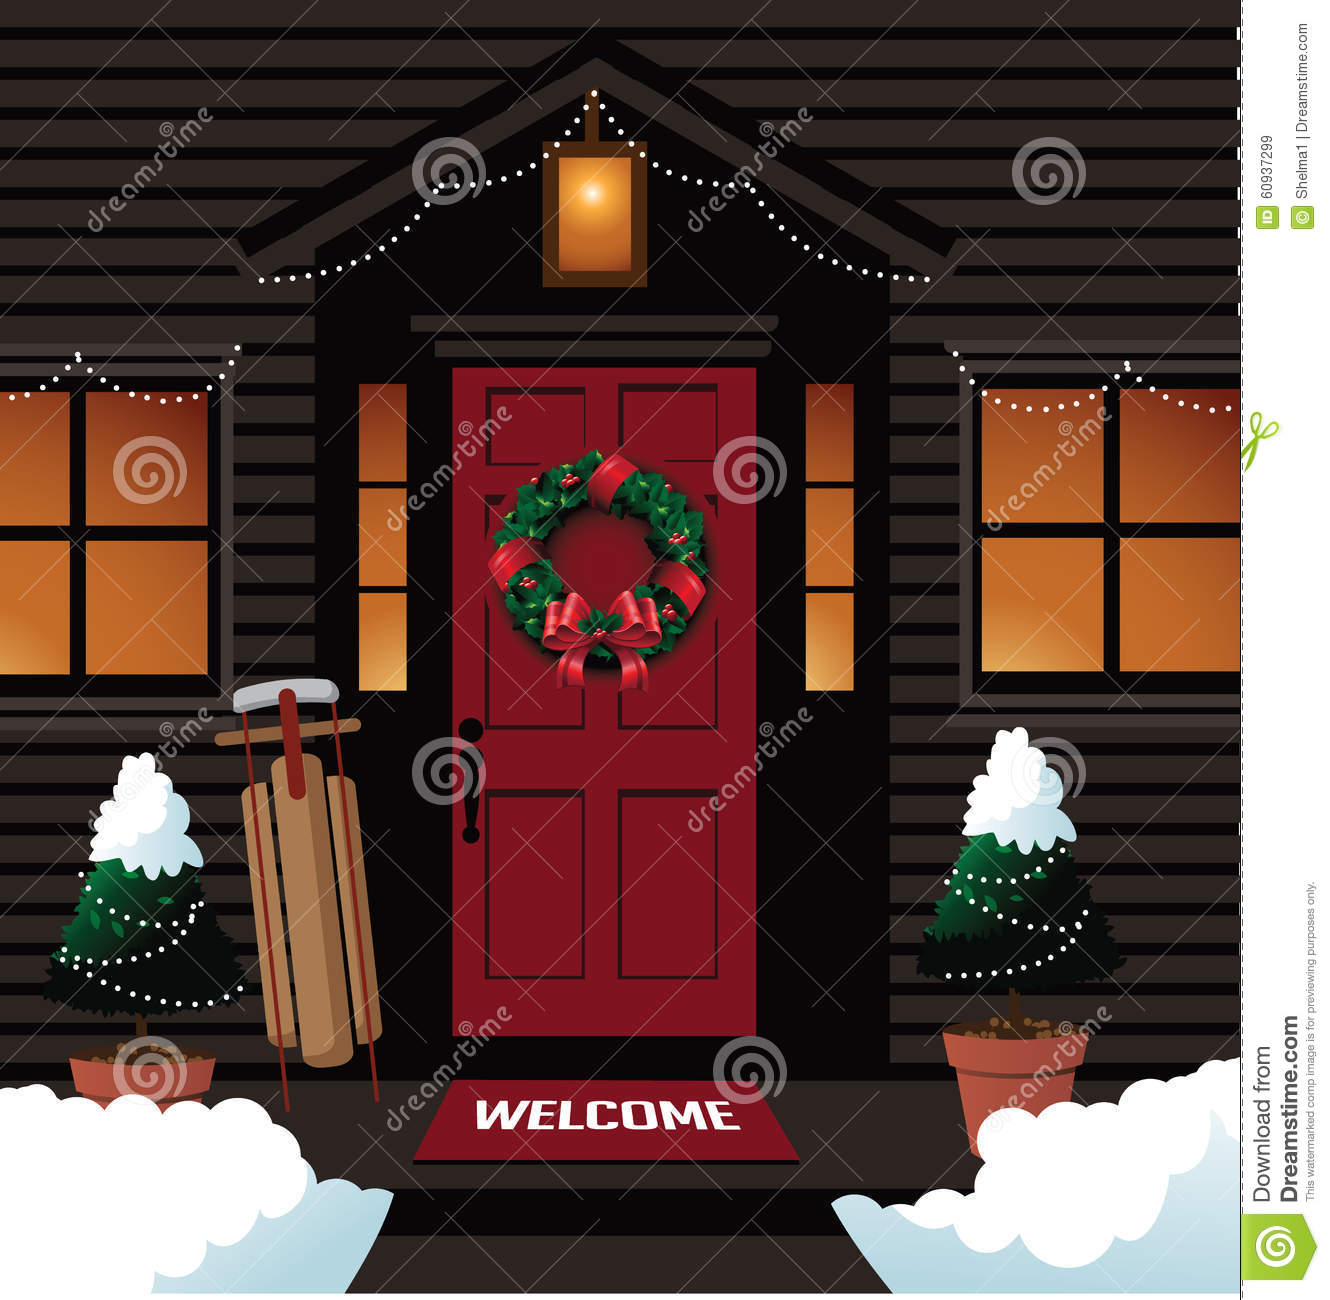 Christmas Front Door With Sleigh Wreath And Trees Stock Vector